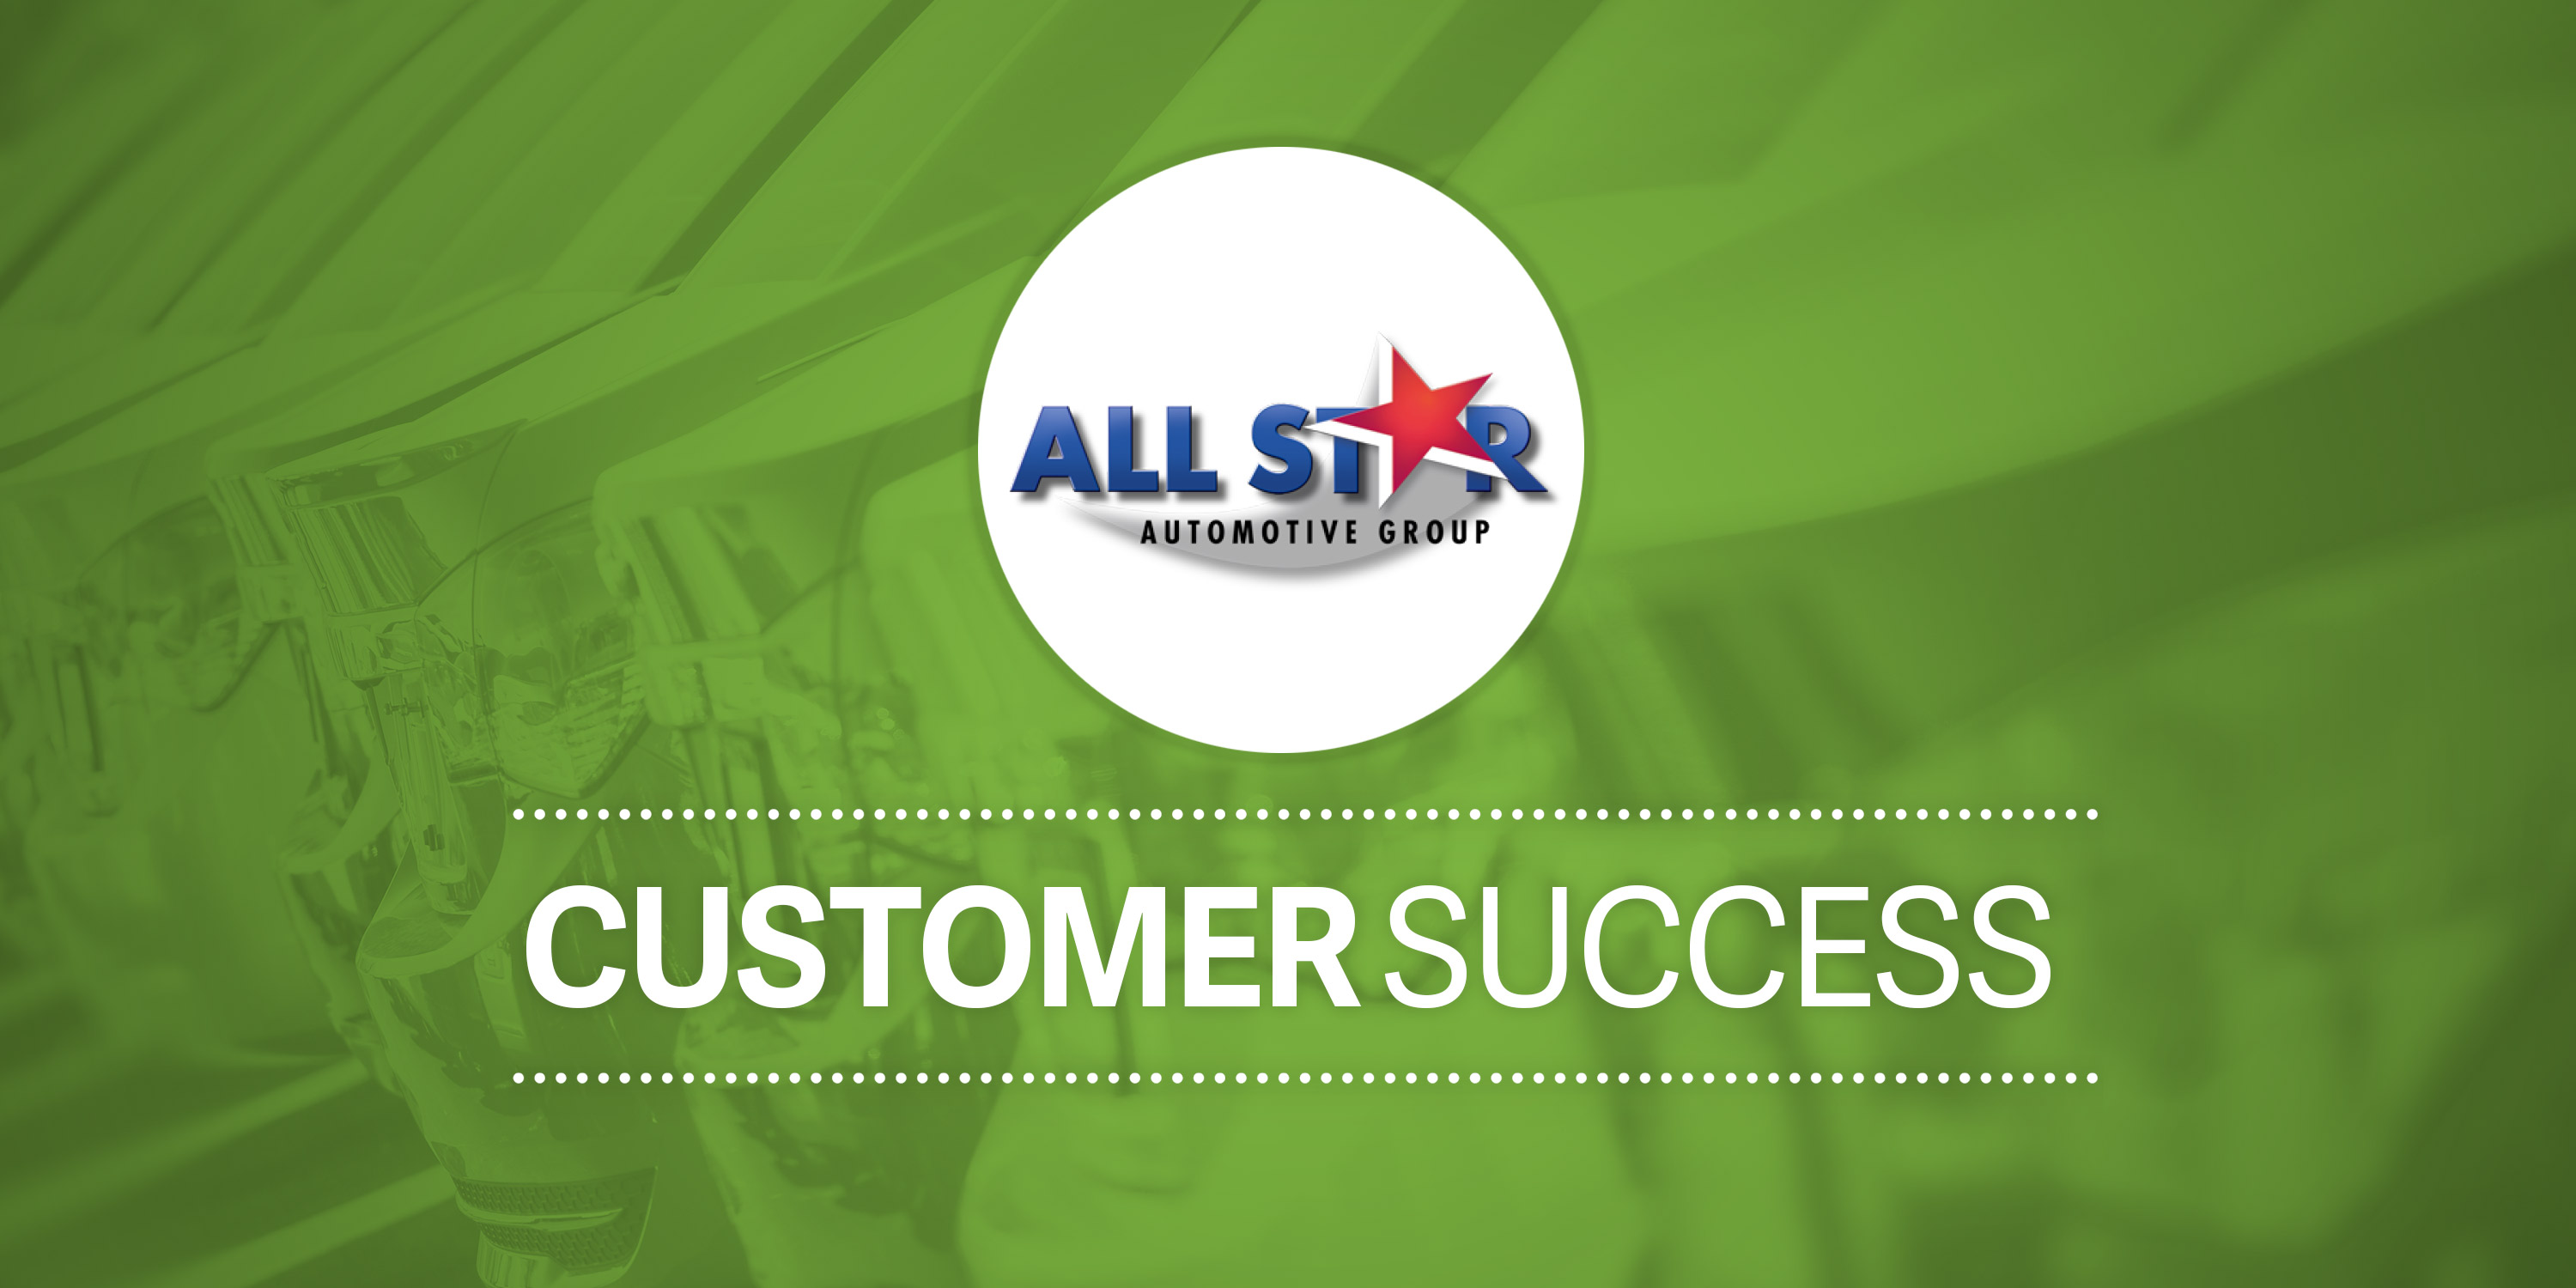 Case Study: All Star Automotive